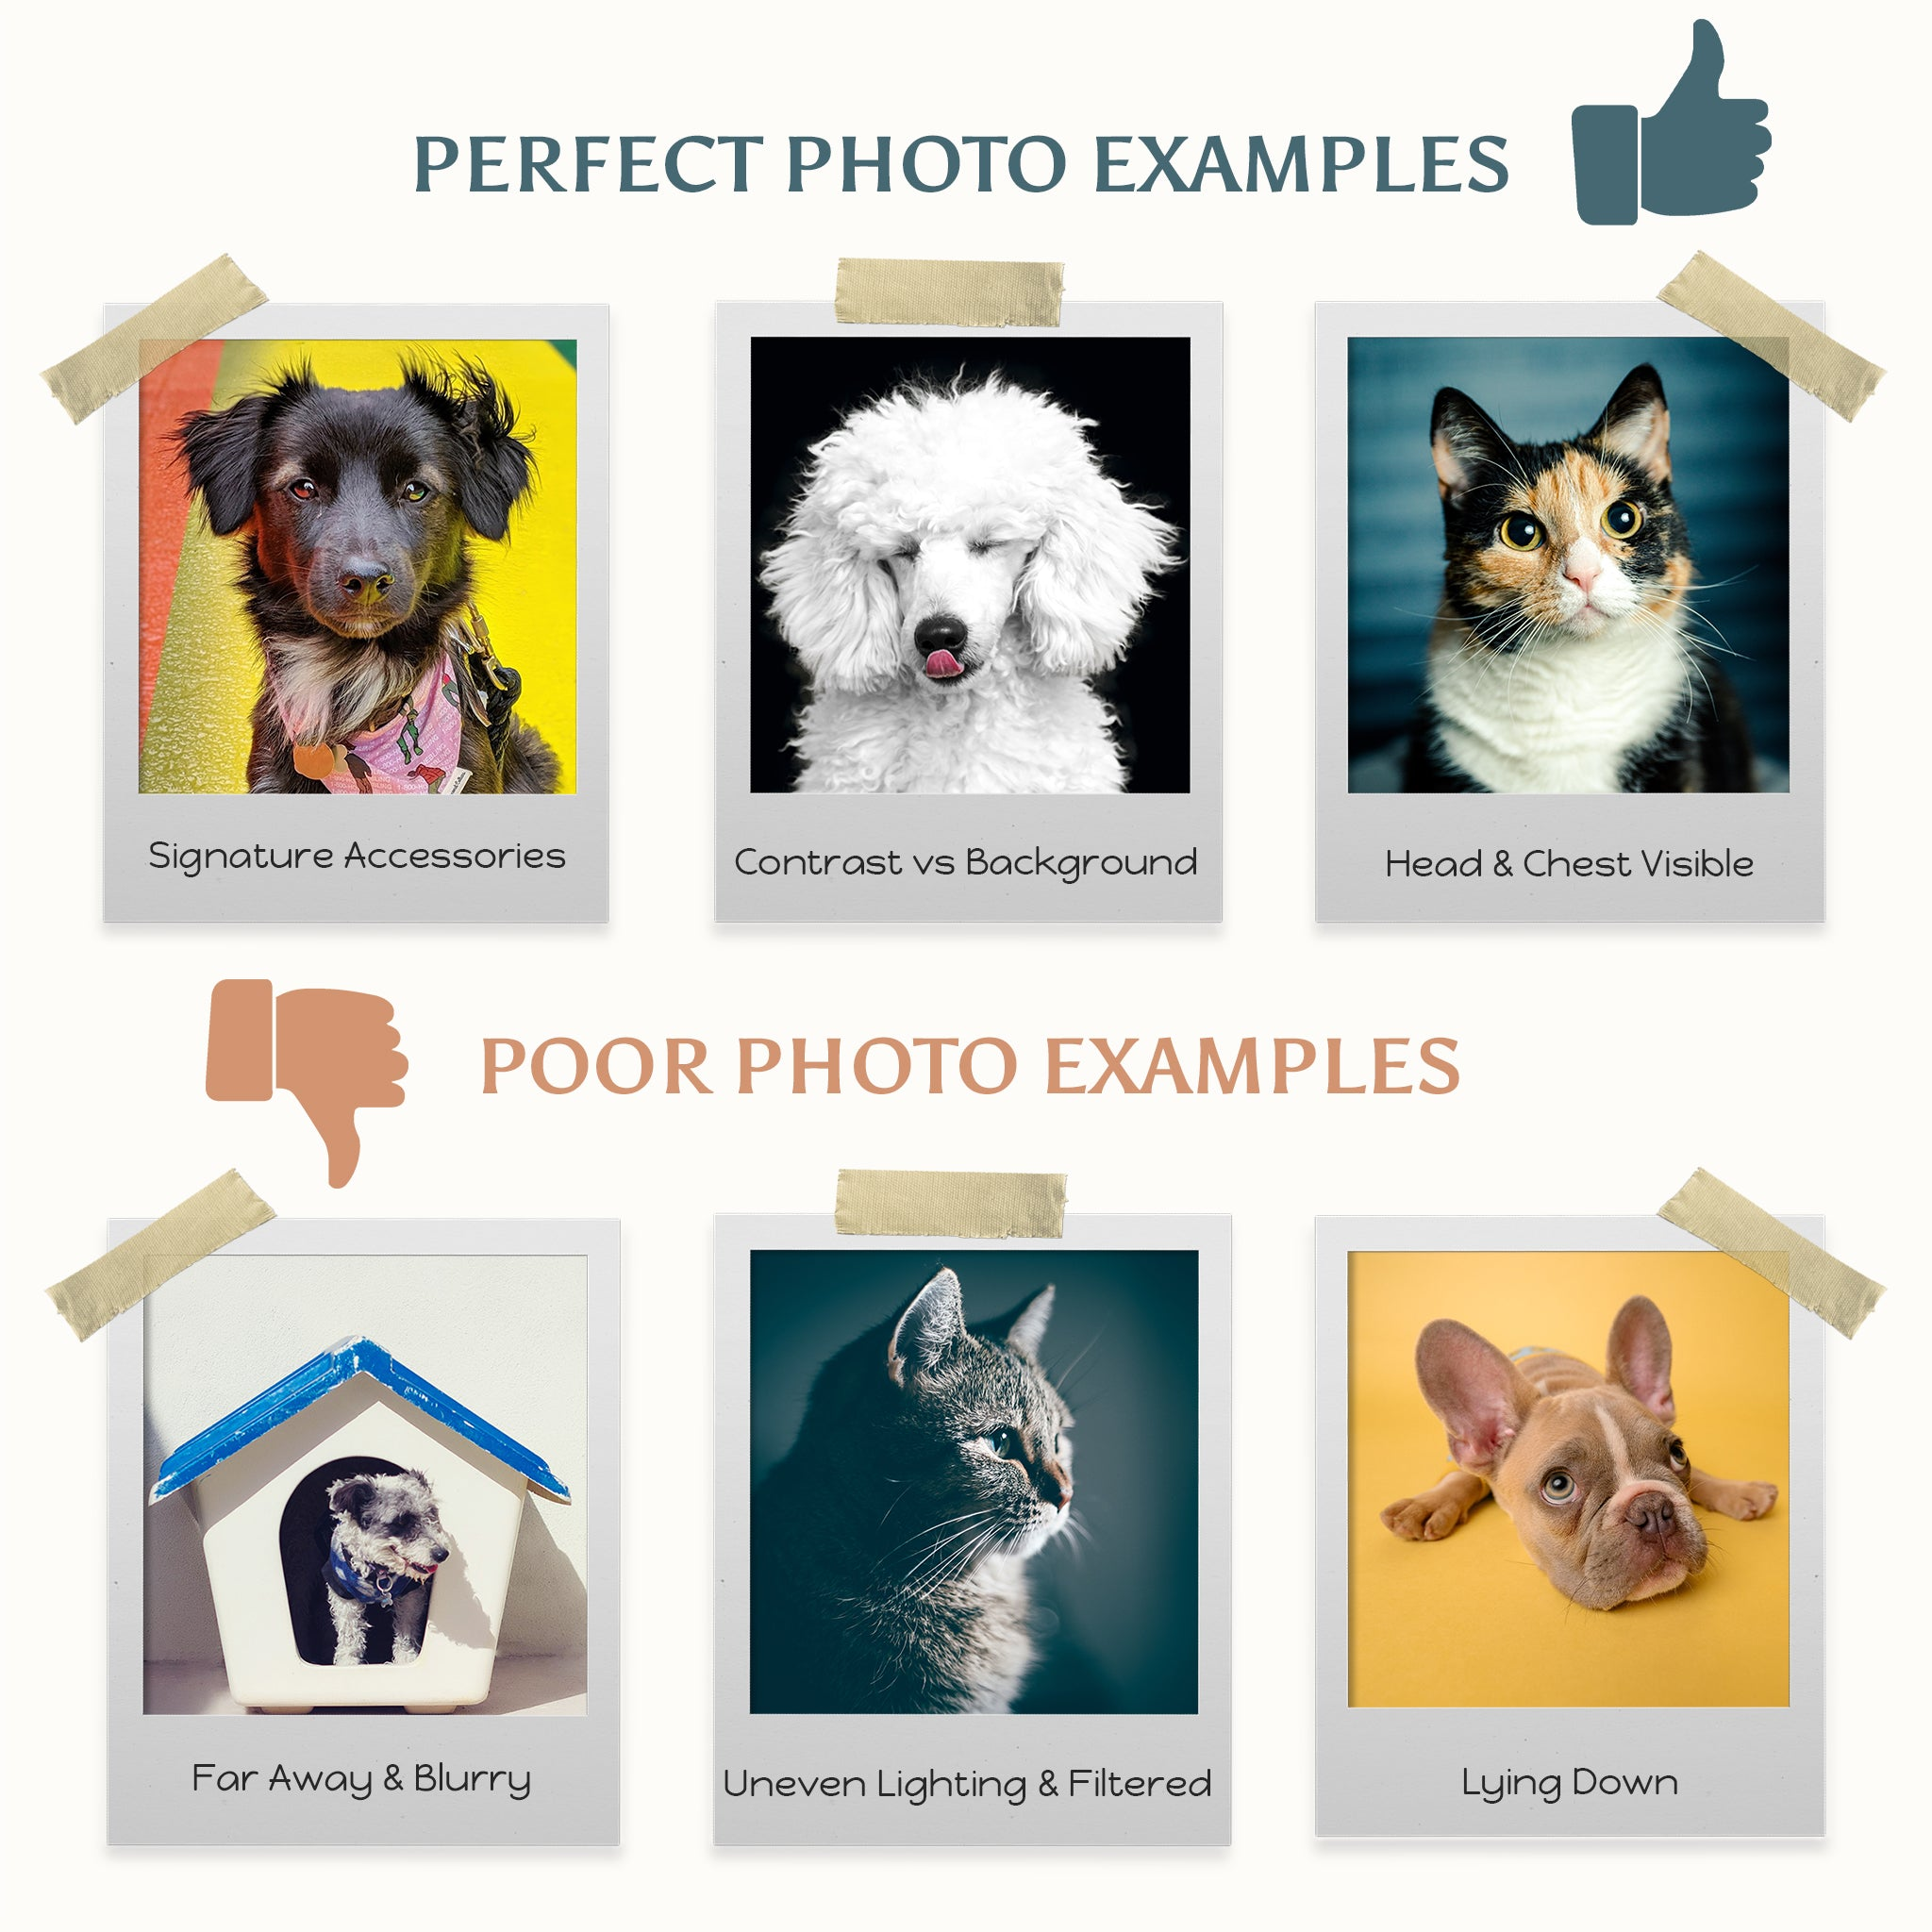 Perfect photo of pets to upload: head and chest visible, contrast between pet and background, including signature accessories. Poor pet photo examples: far away and blurry, uneven lighting and filtered, pet laying down.